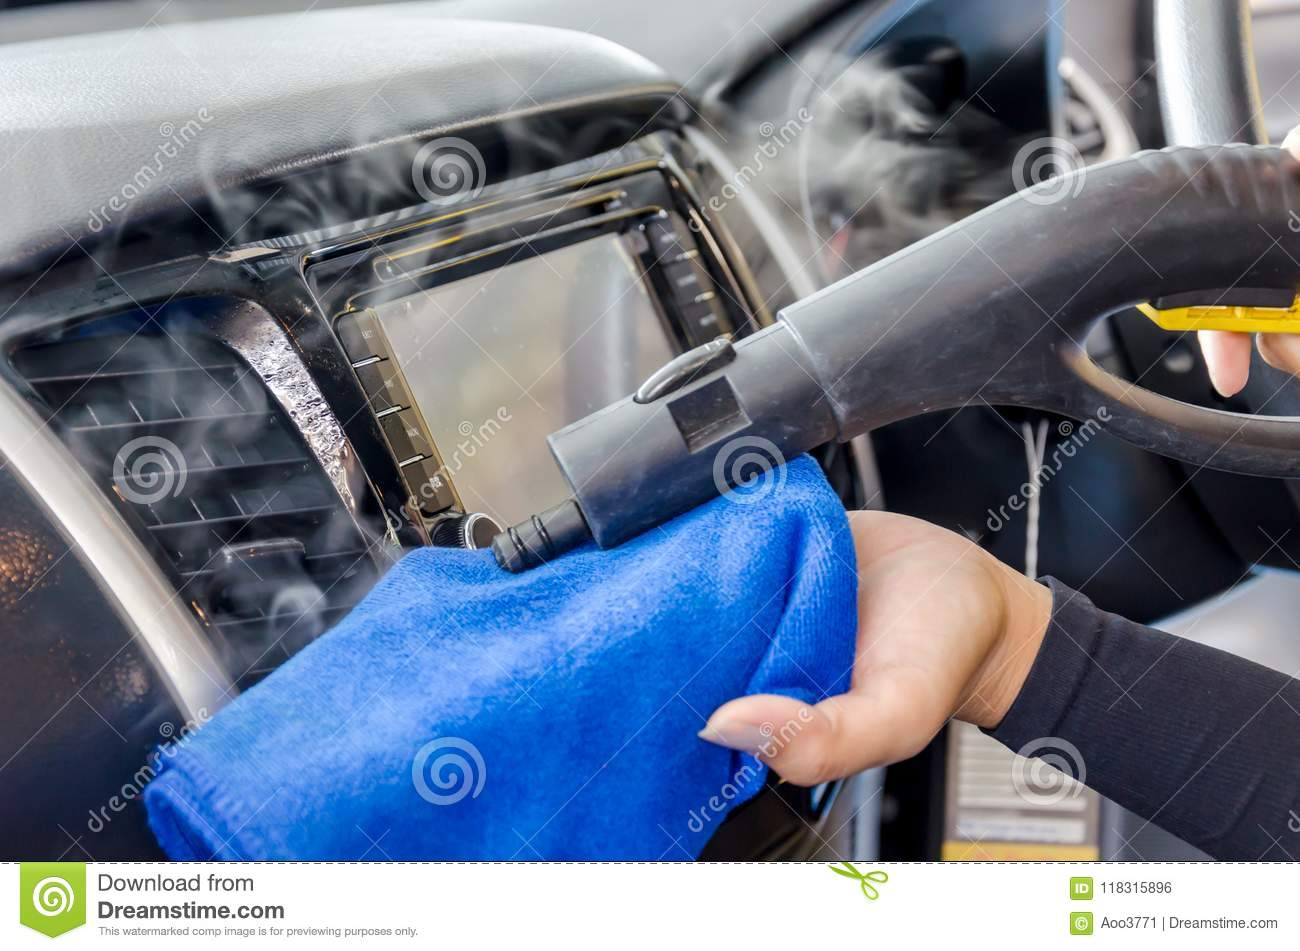 Cleaning Of Car Air Conditioner Stock Photo - Image of